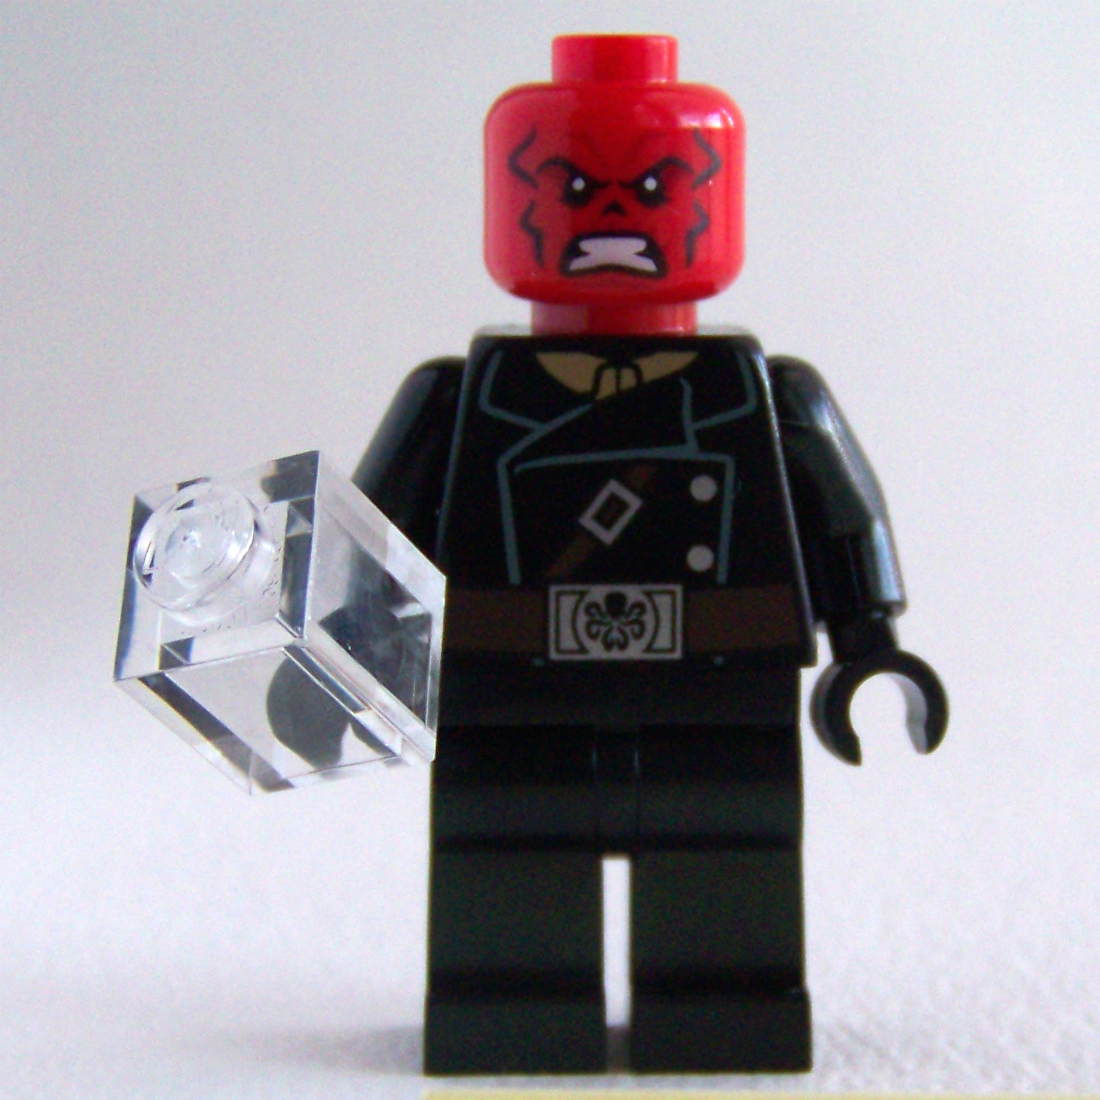 LEGO Red Skull minifigure